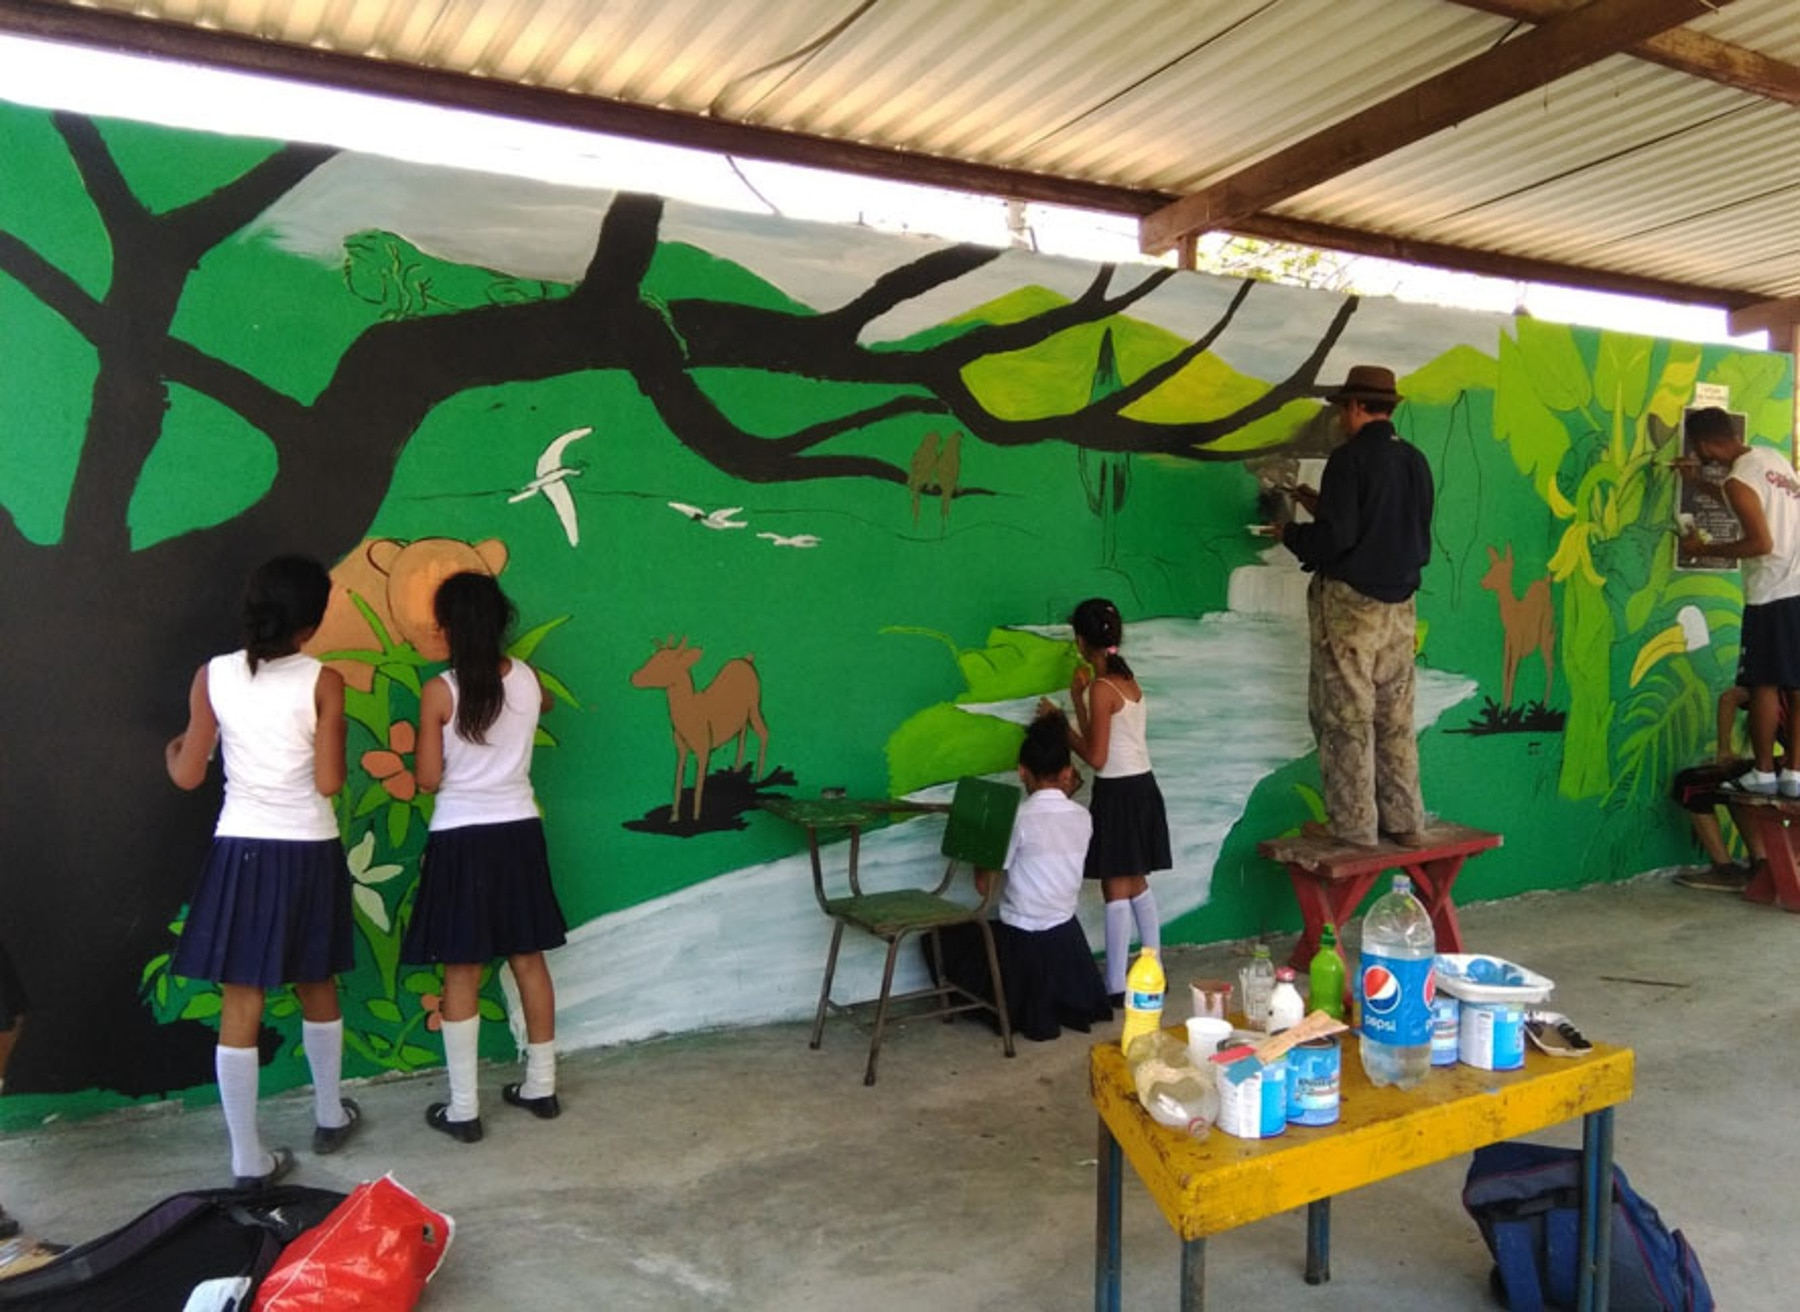 Adults and children painting mural on wall (U.S. Embassy Tegucigalpa/David Dulko)